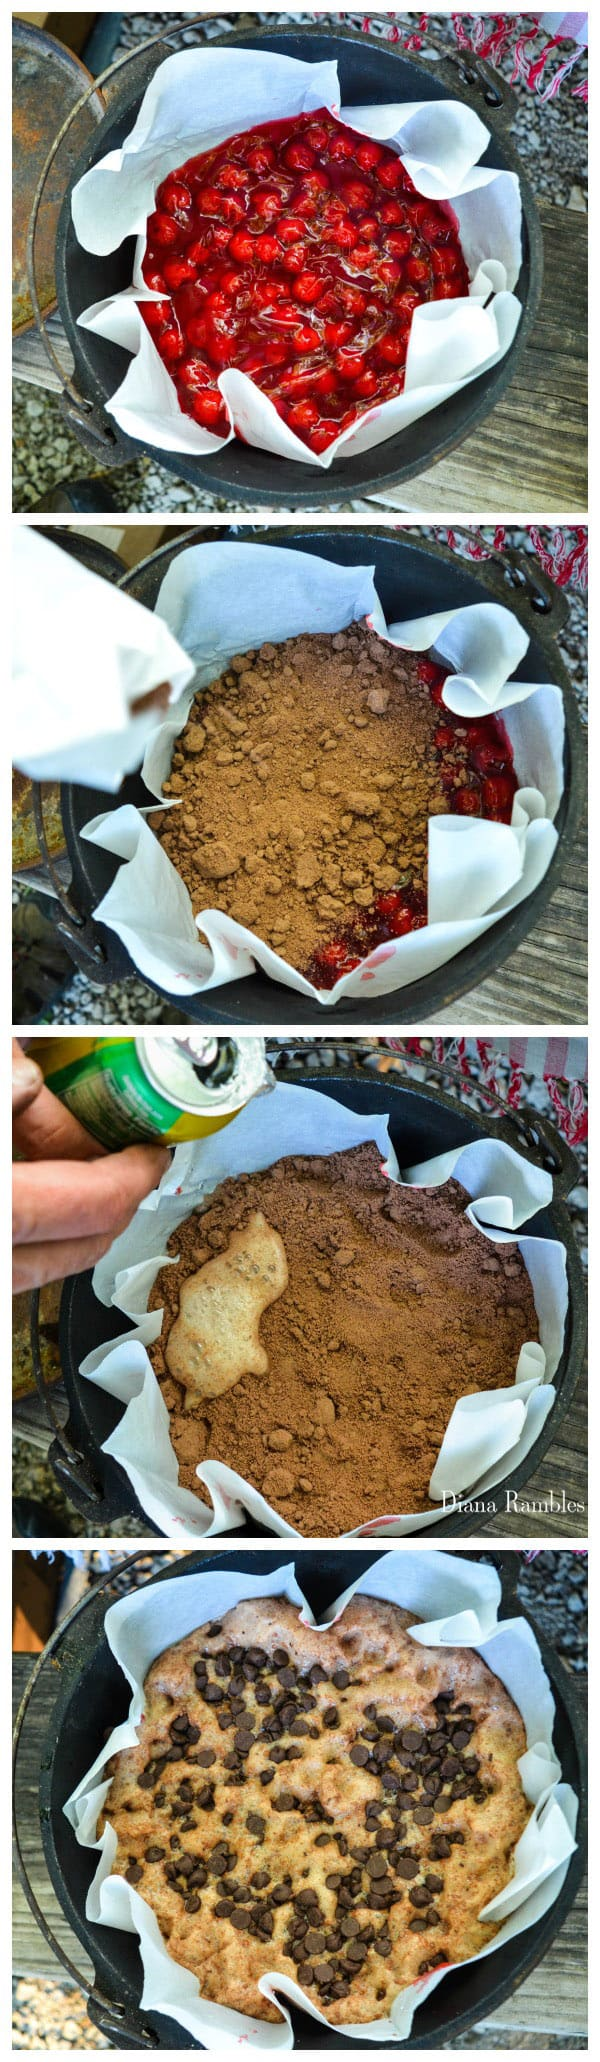 Chocolate Cherry Lava Cake Recipe Directions